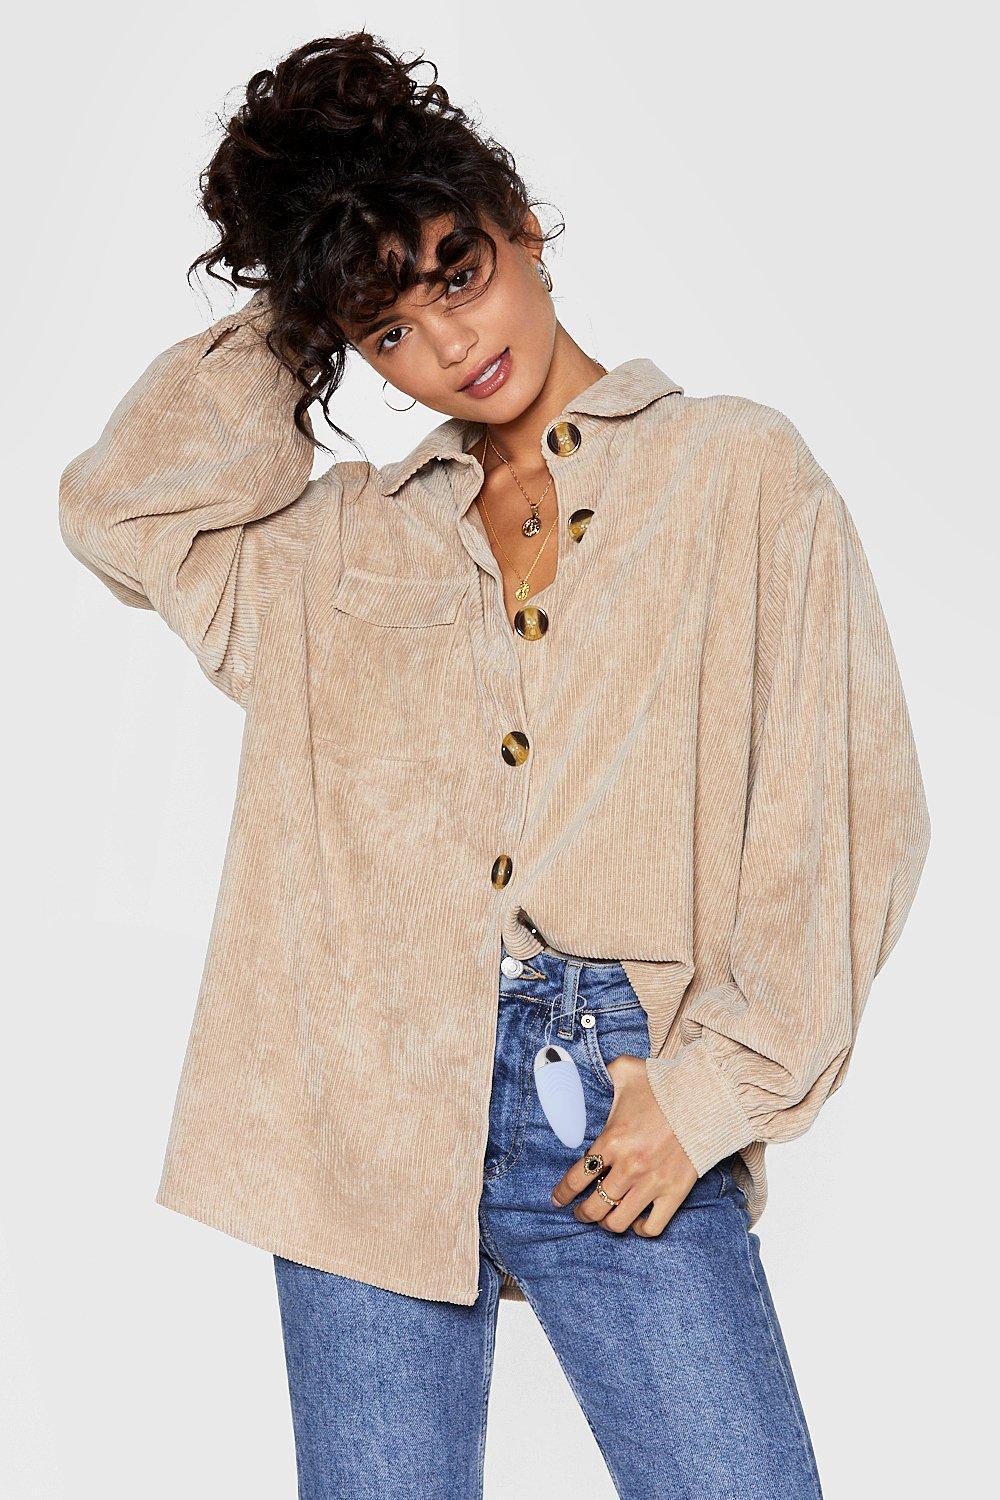 Button Down Oversized Corduroy Shirt, Nasty Gal, £38.00